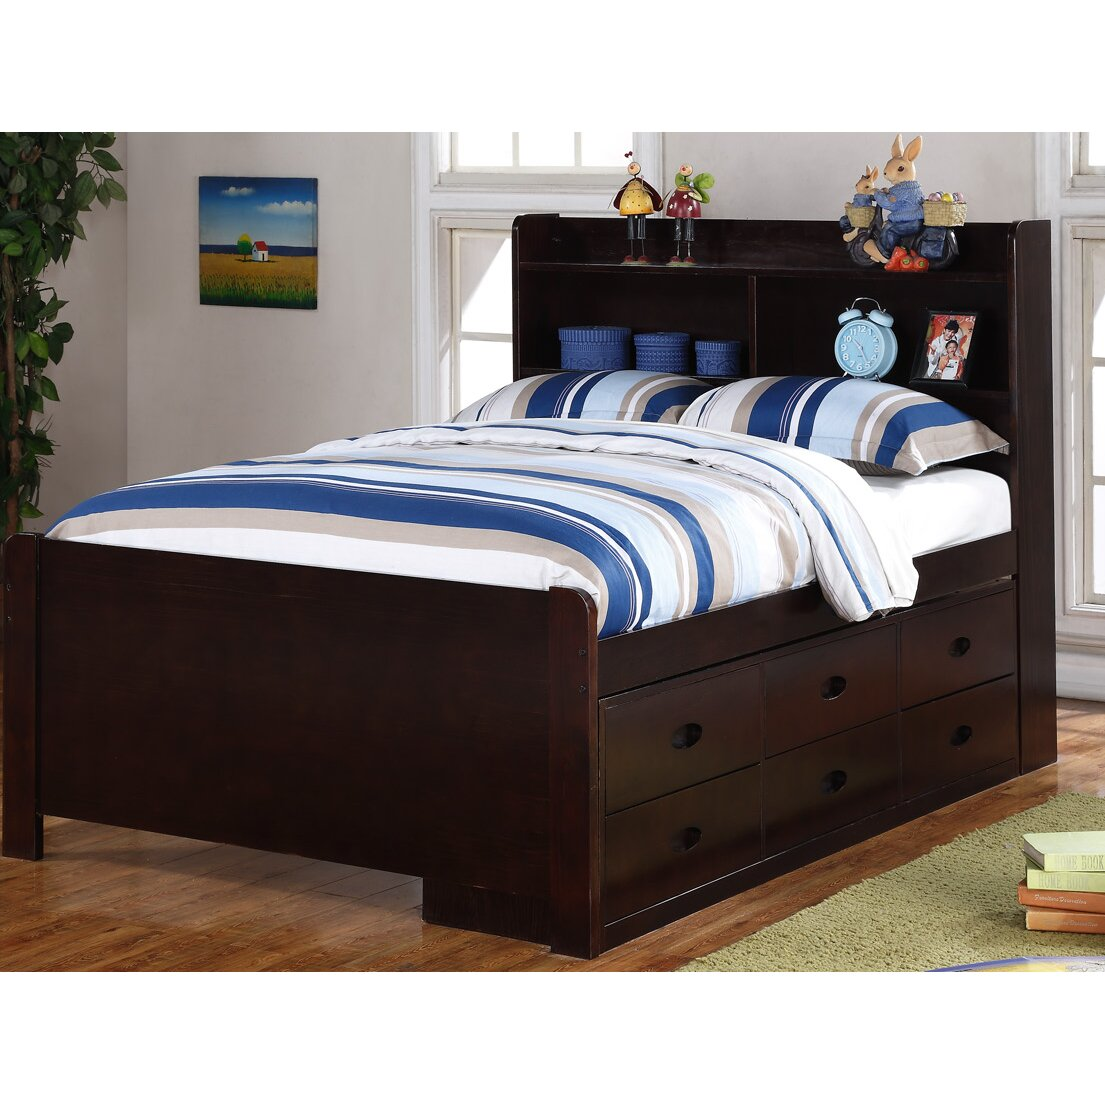 boraam captain bed with storage reviews wayfair. Black Bedroom Furniture Sets. Home Design Ideas